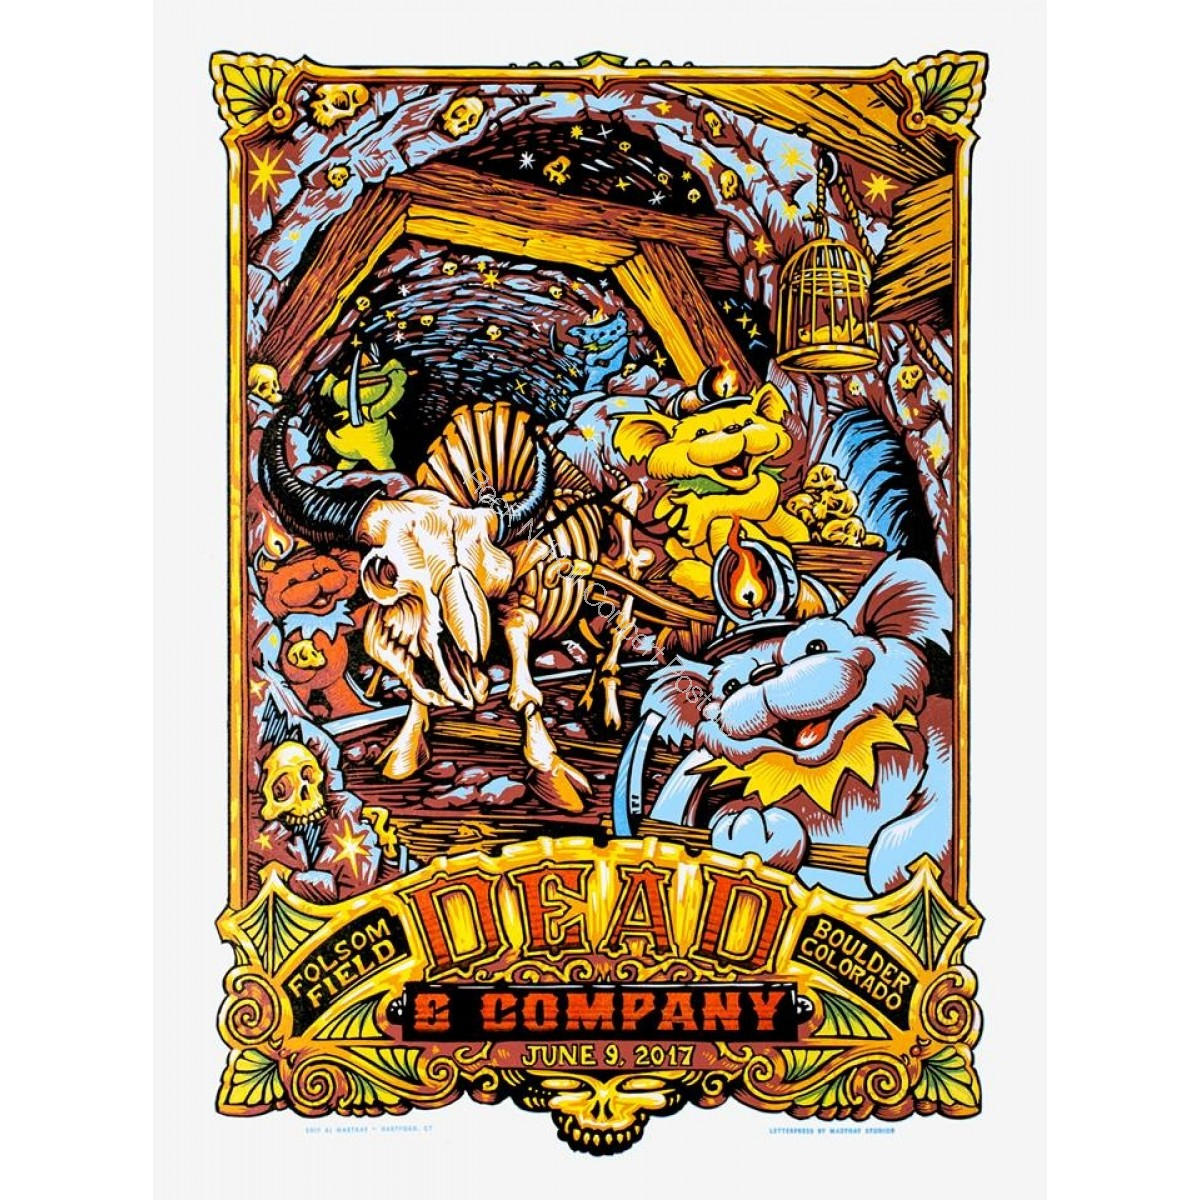 Dead & Company Folsom Field Boulder Colorado June 9th 2017 LE Screen Print Poster